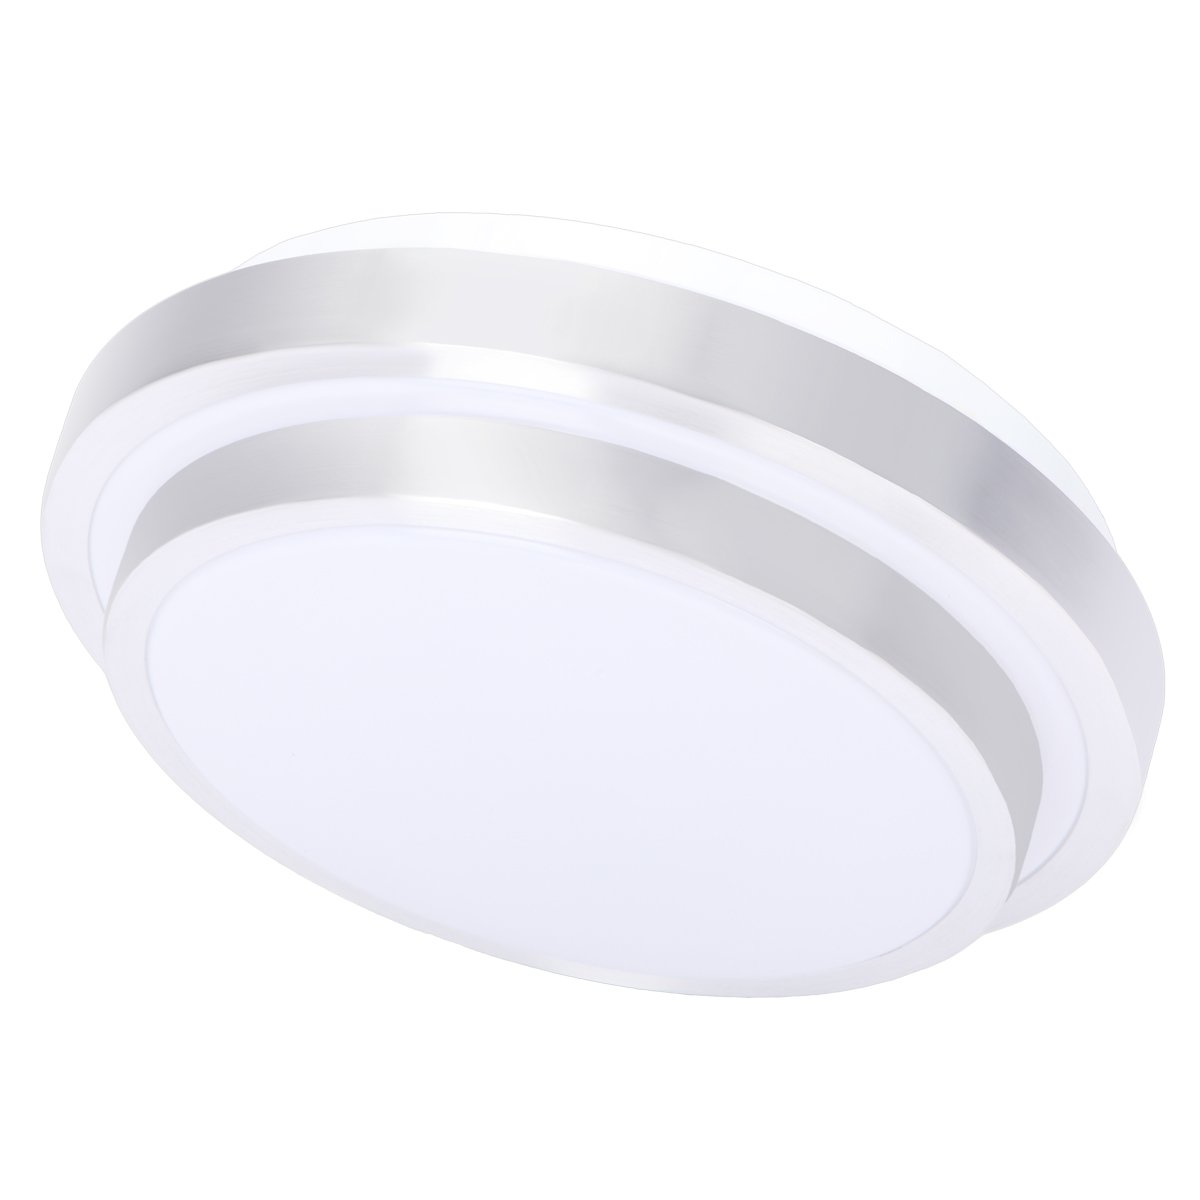 Drosbey 18W LED Flush Mount Ceiling Light, 10in, 160W Incandescent Bulbs Equivalent, 2000 Lumens, 5000K Daylight White, Round Lighting Fixture for Kitchen, Hallway, Bathroom, Bedroom